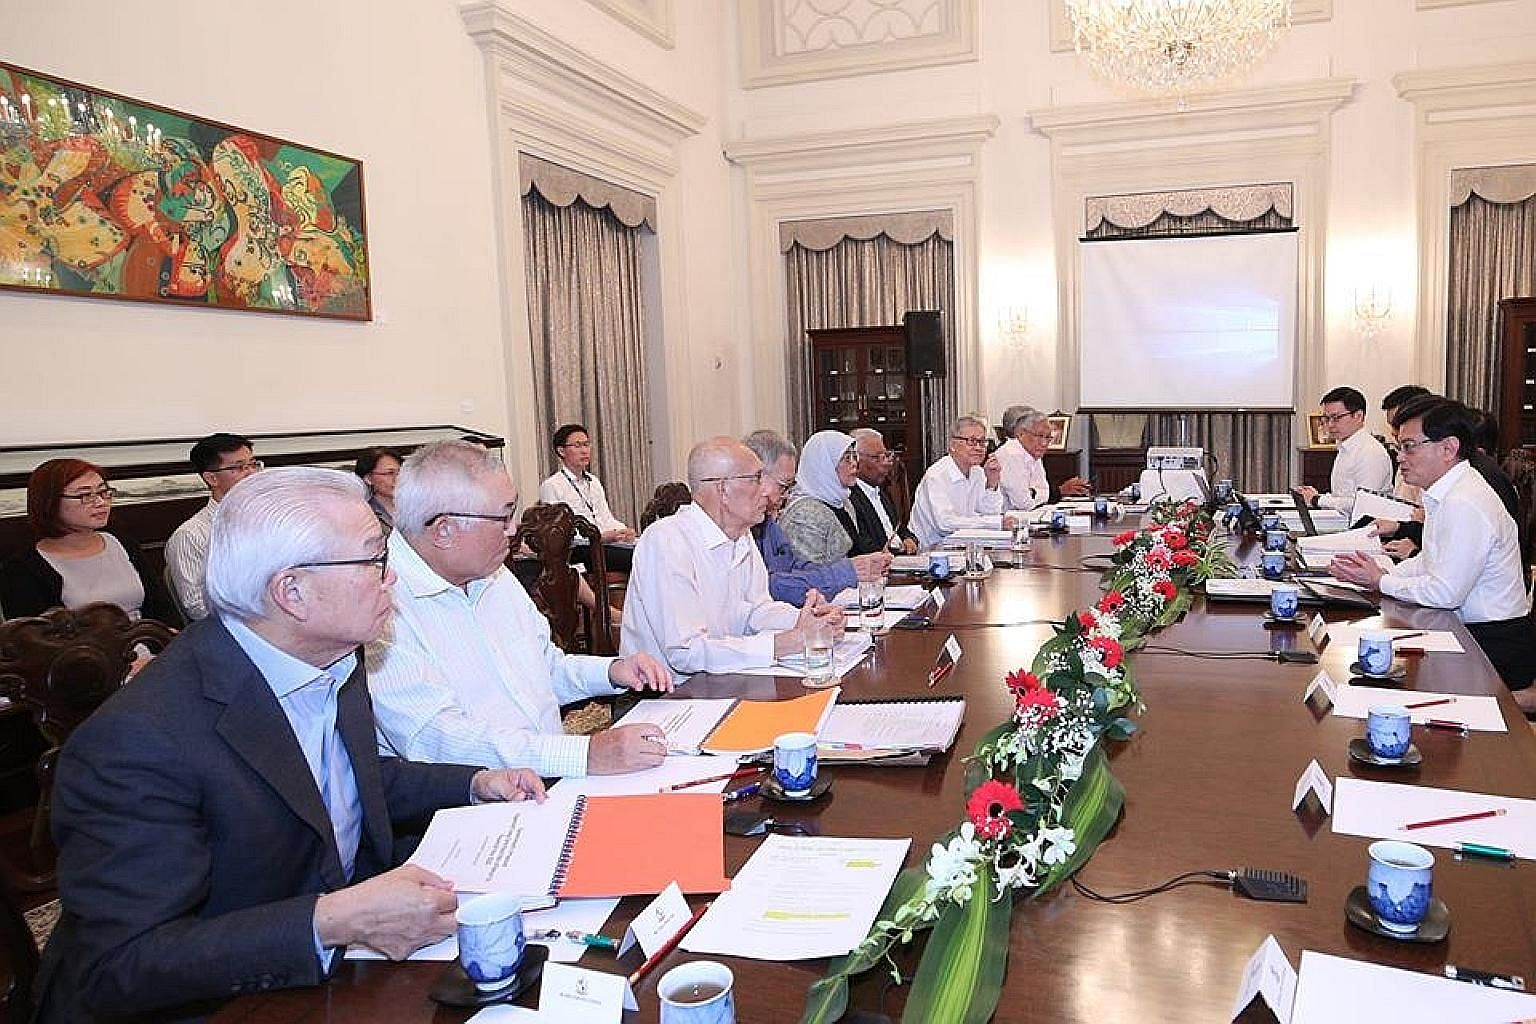 President Halimah Yacob being briefed by Deputy Prime Minister and Finance Minister Heng Swee Keat and officials from the Ministry of Finance last week. Also present were the Council of Presidential Advisers and representatives from GIC, the Monetary